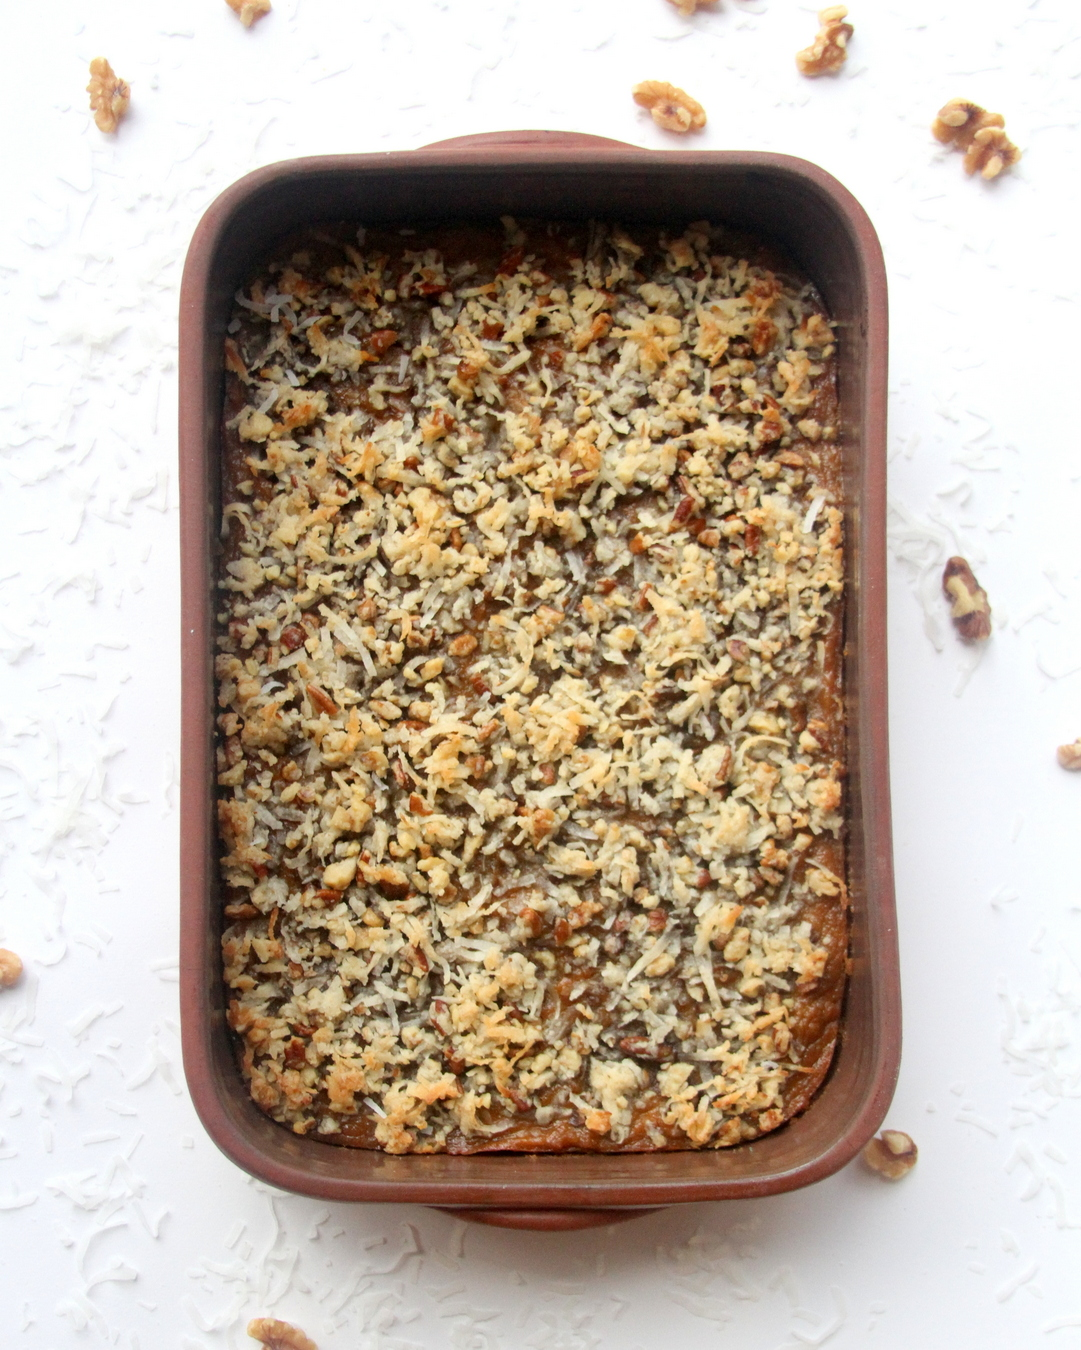 mimi's sweet potato casserole